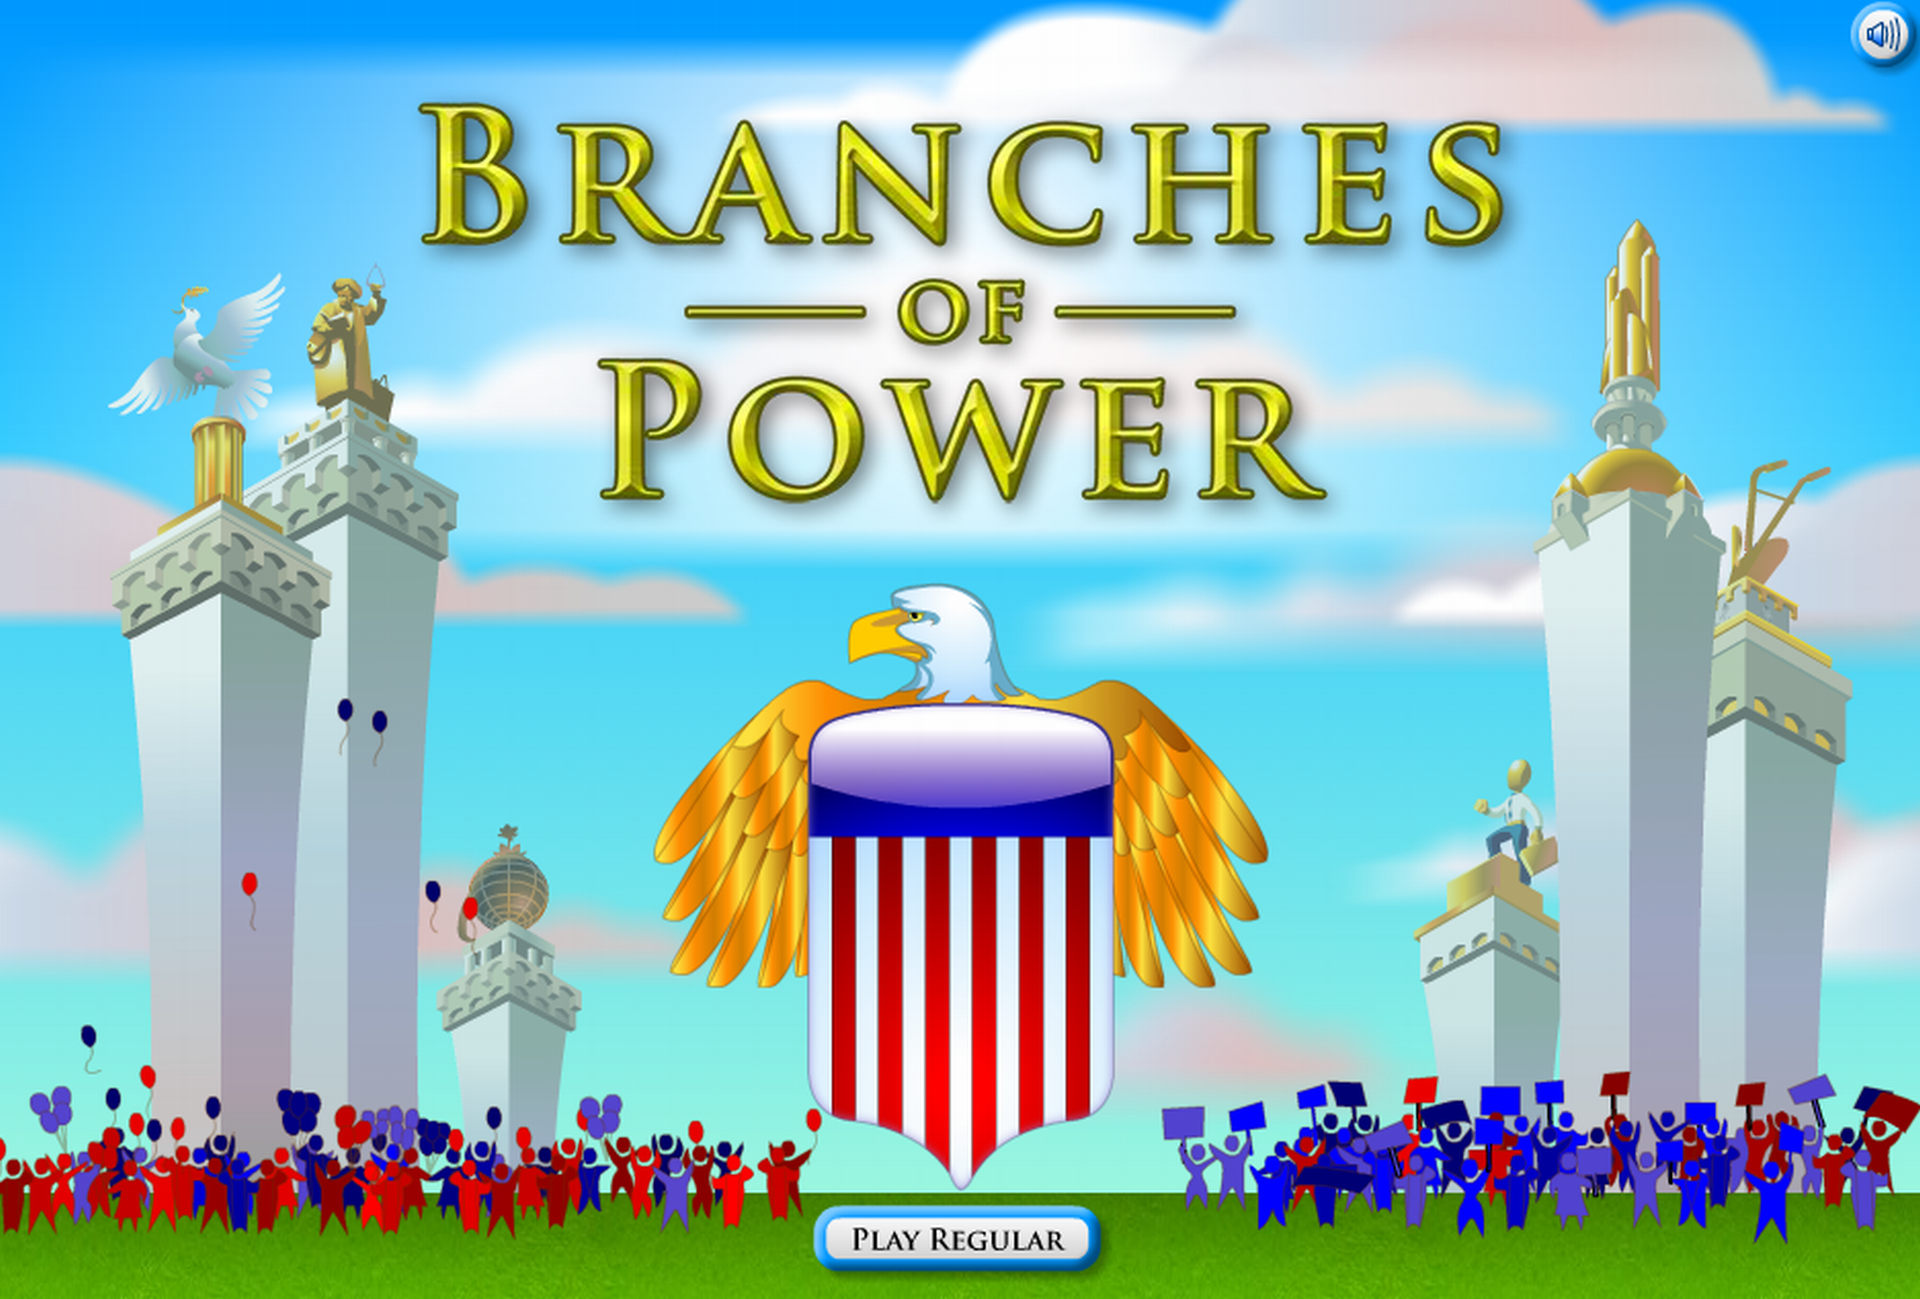 Judicial Branch Of Government For Kids Branches_of_power.png Judicial Branch For Kids